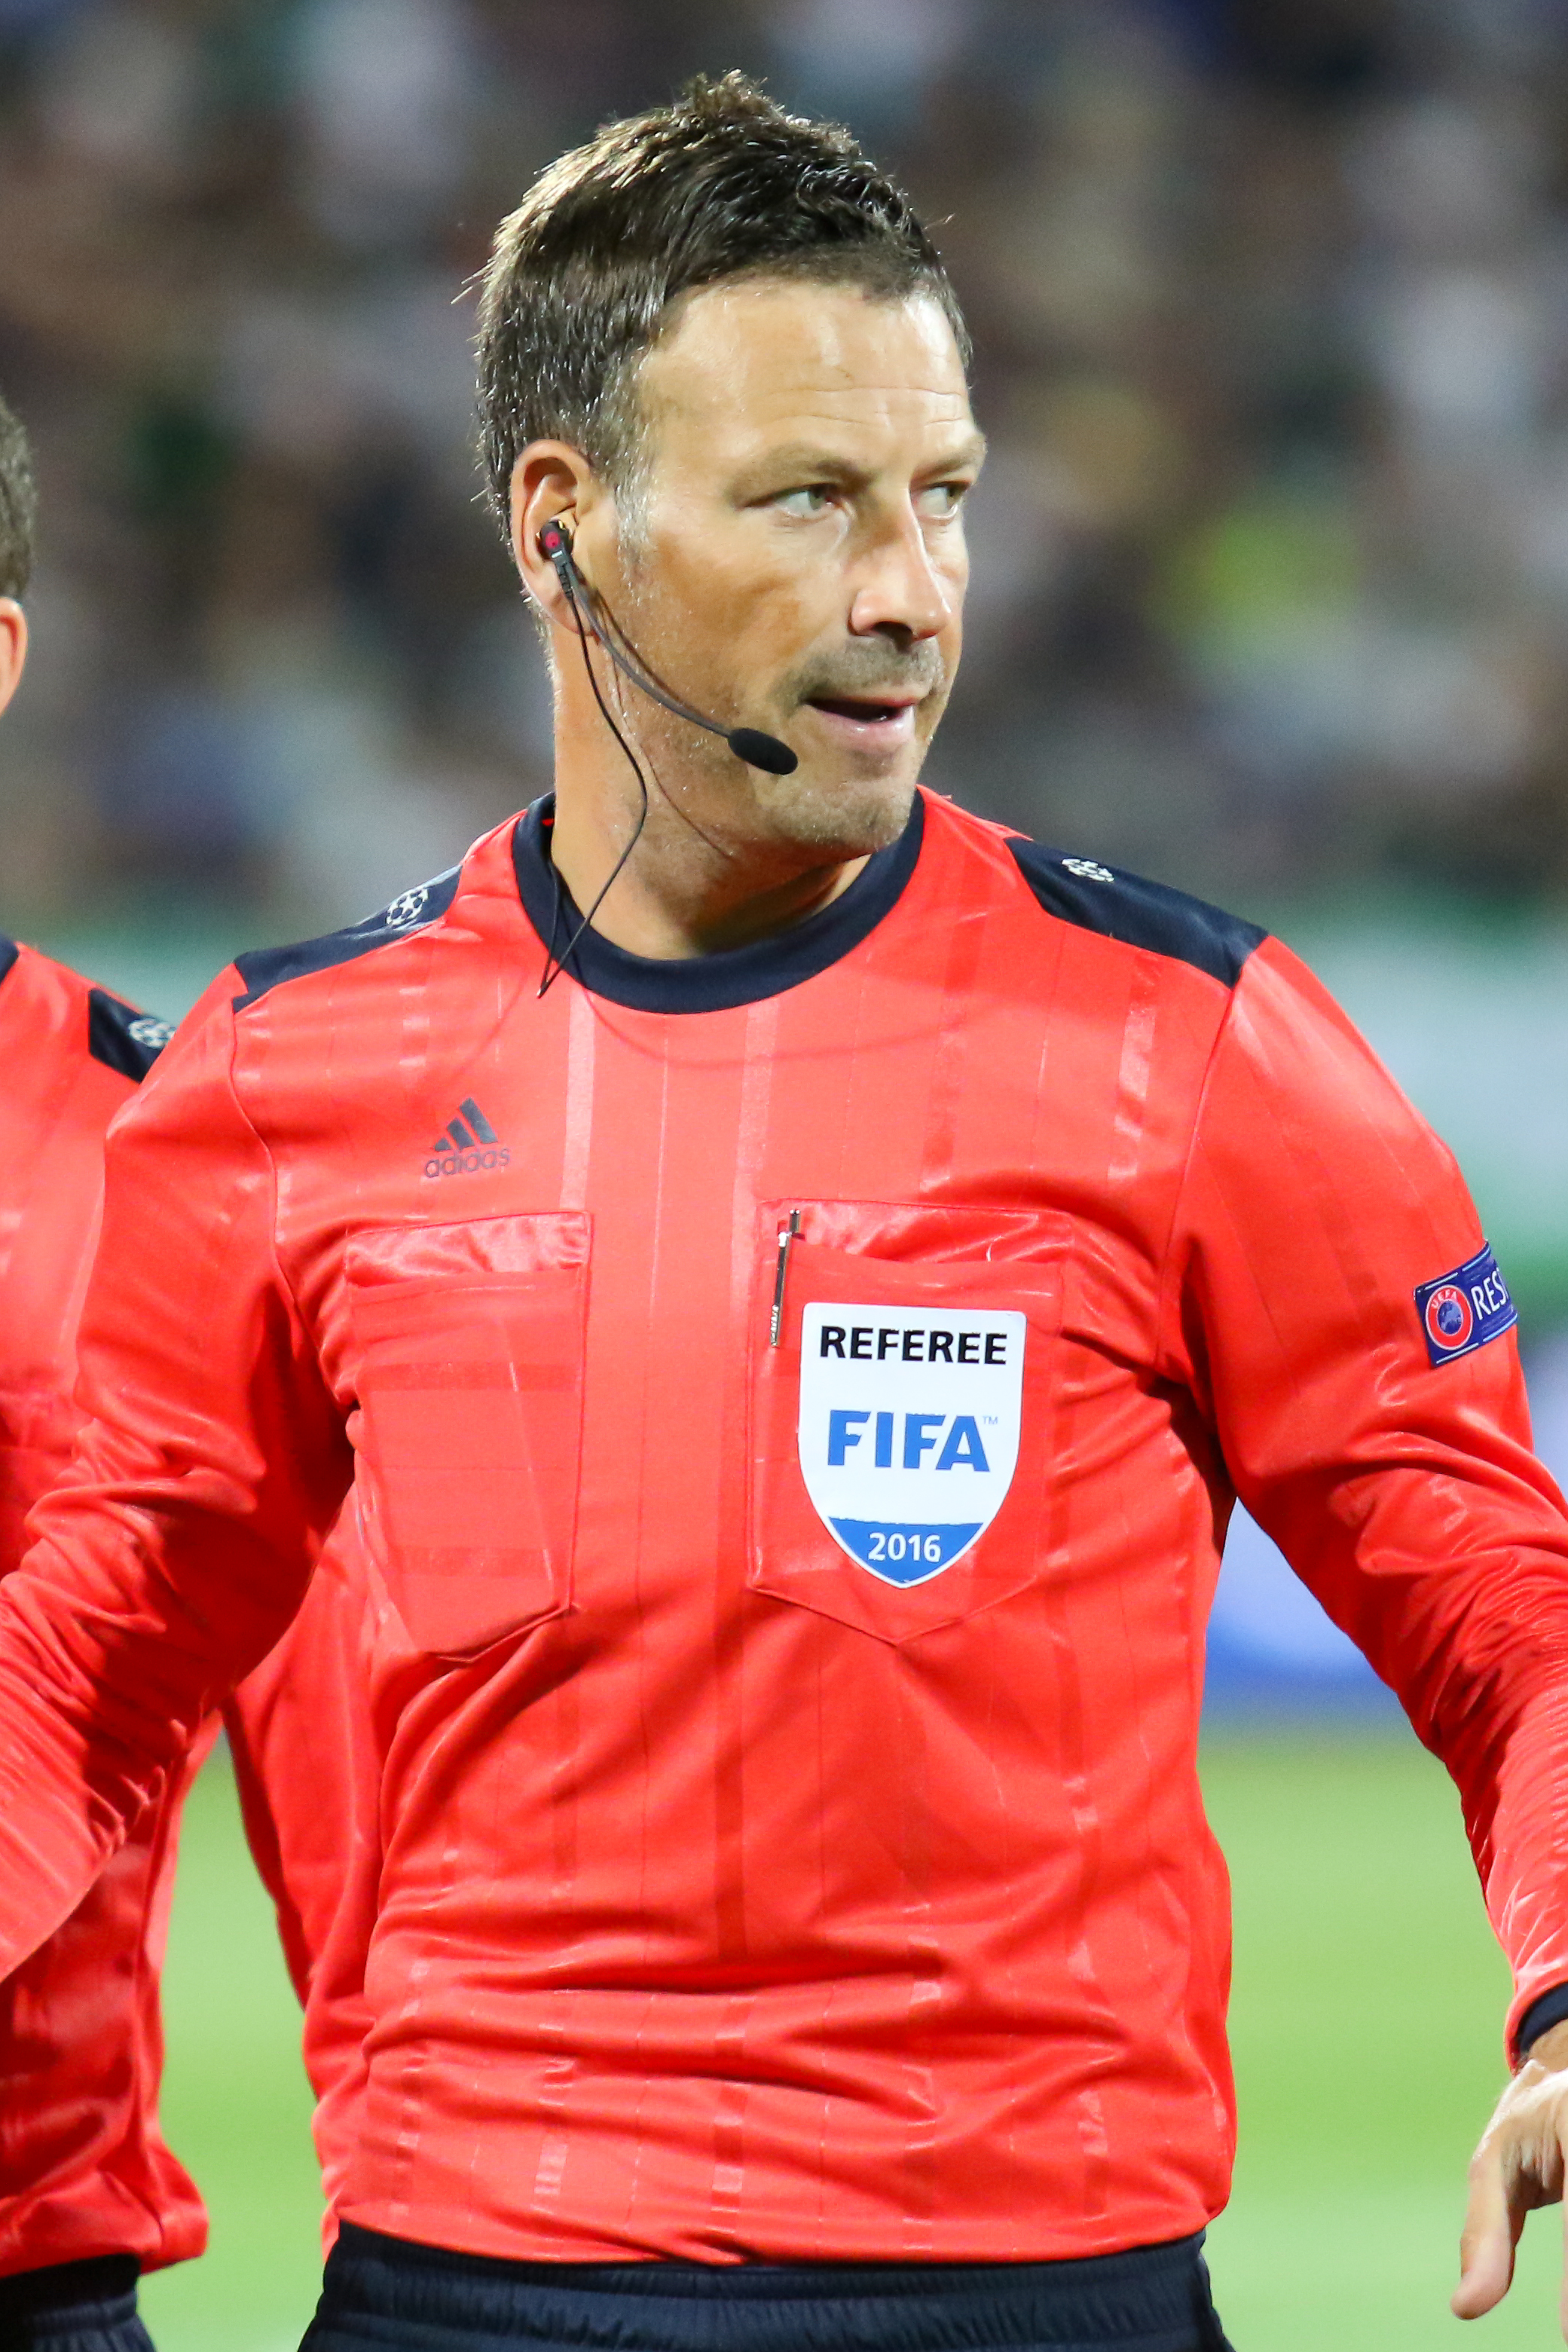 The 43-year old son of father (?) and mother(?) Mark Clattenburg in 2018 photo. Mark Clattenburg earned a  million dollar salary - leaving the net worth at 1 million in 2018